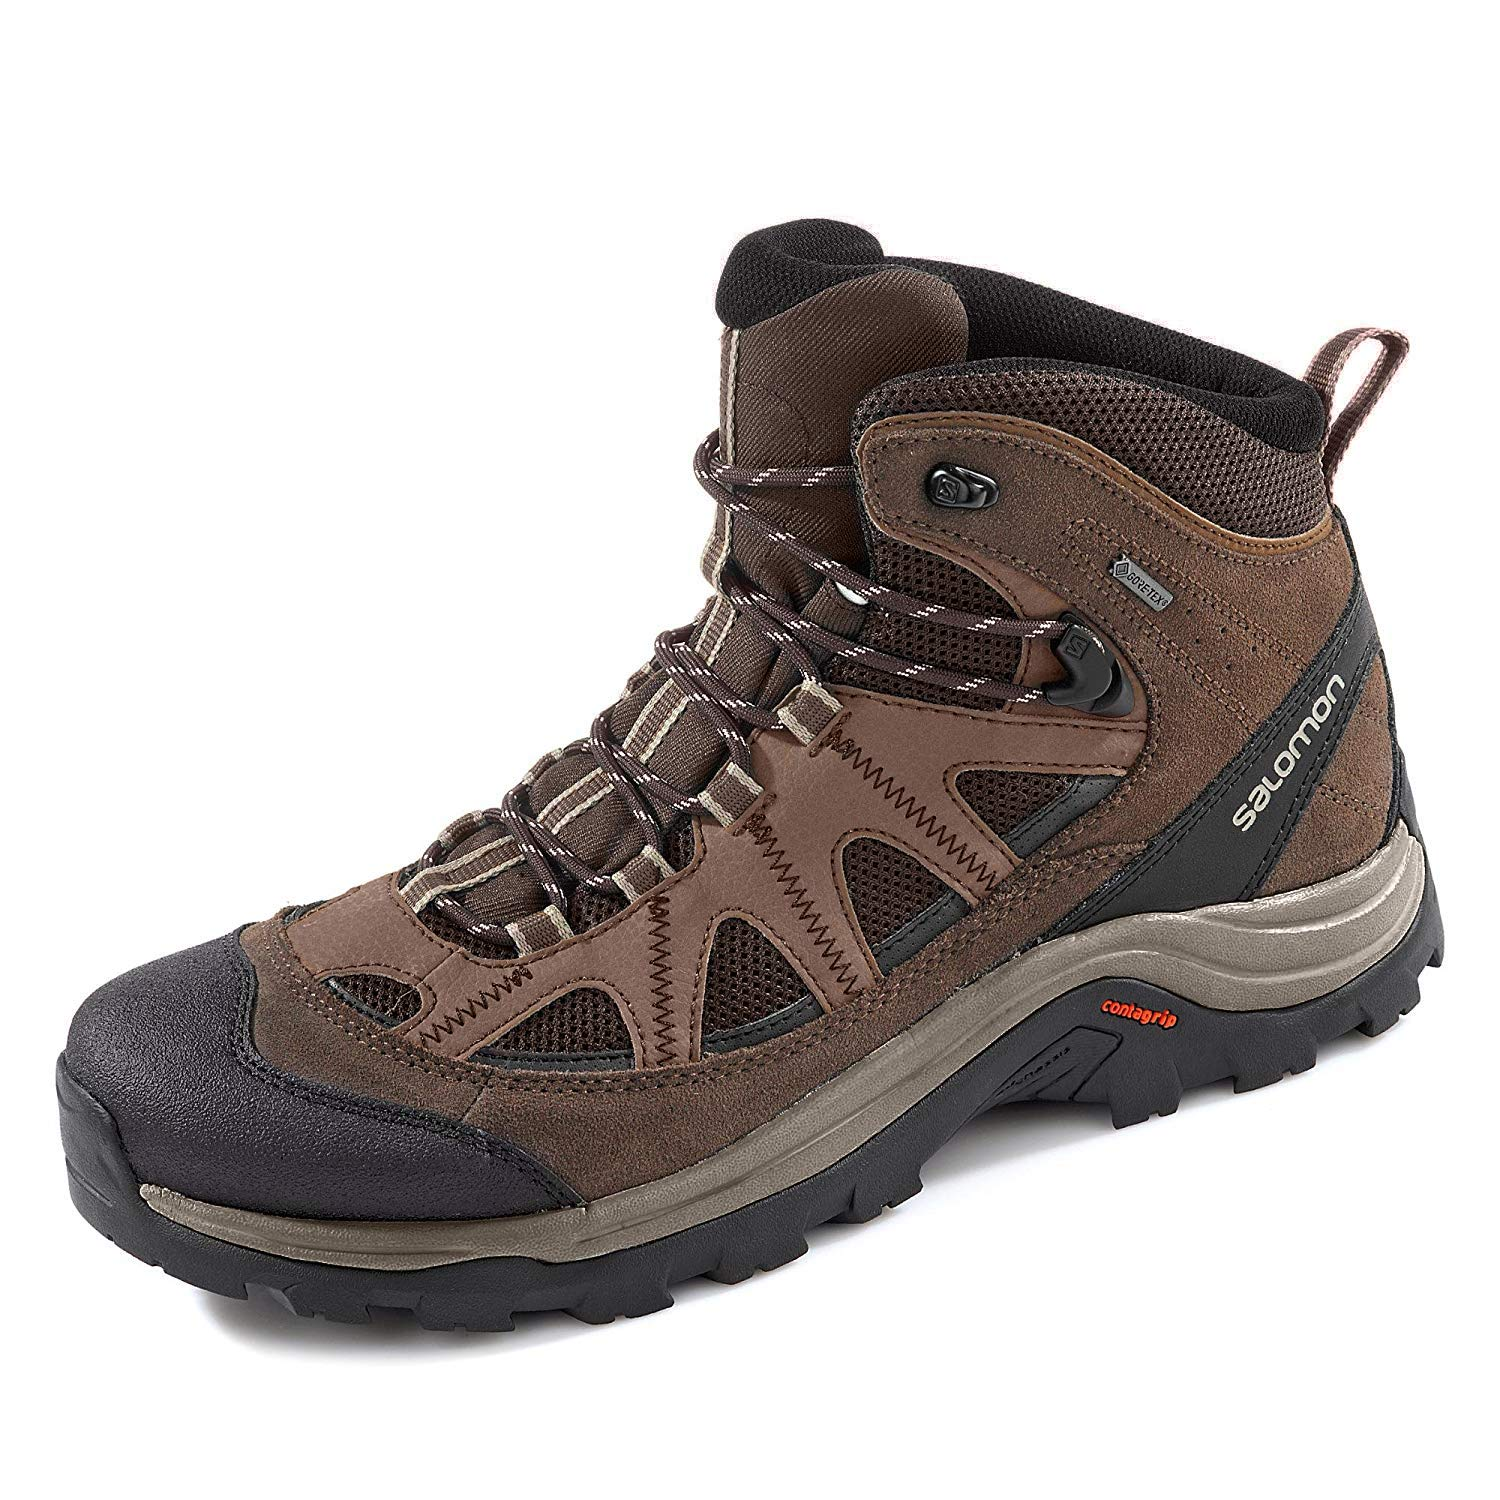 Image of Backpacking Boots Salomon Men's Authentic LTR GTX Backpacking Boots